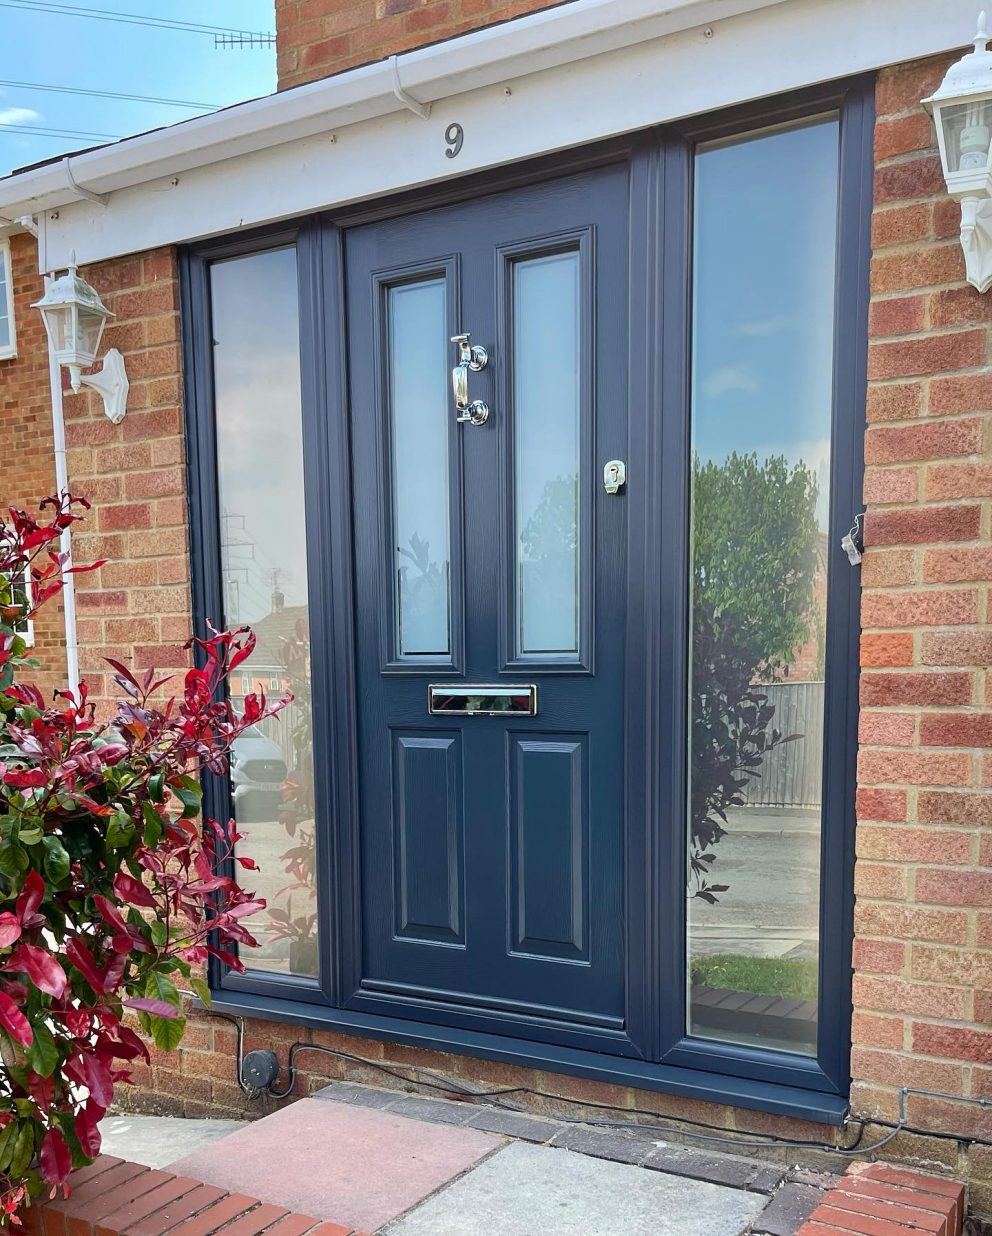 Black front door with glass side panels.